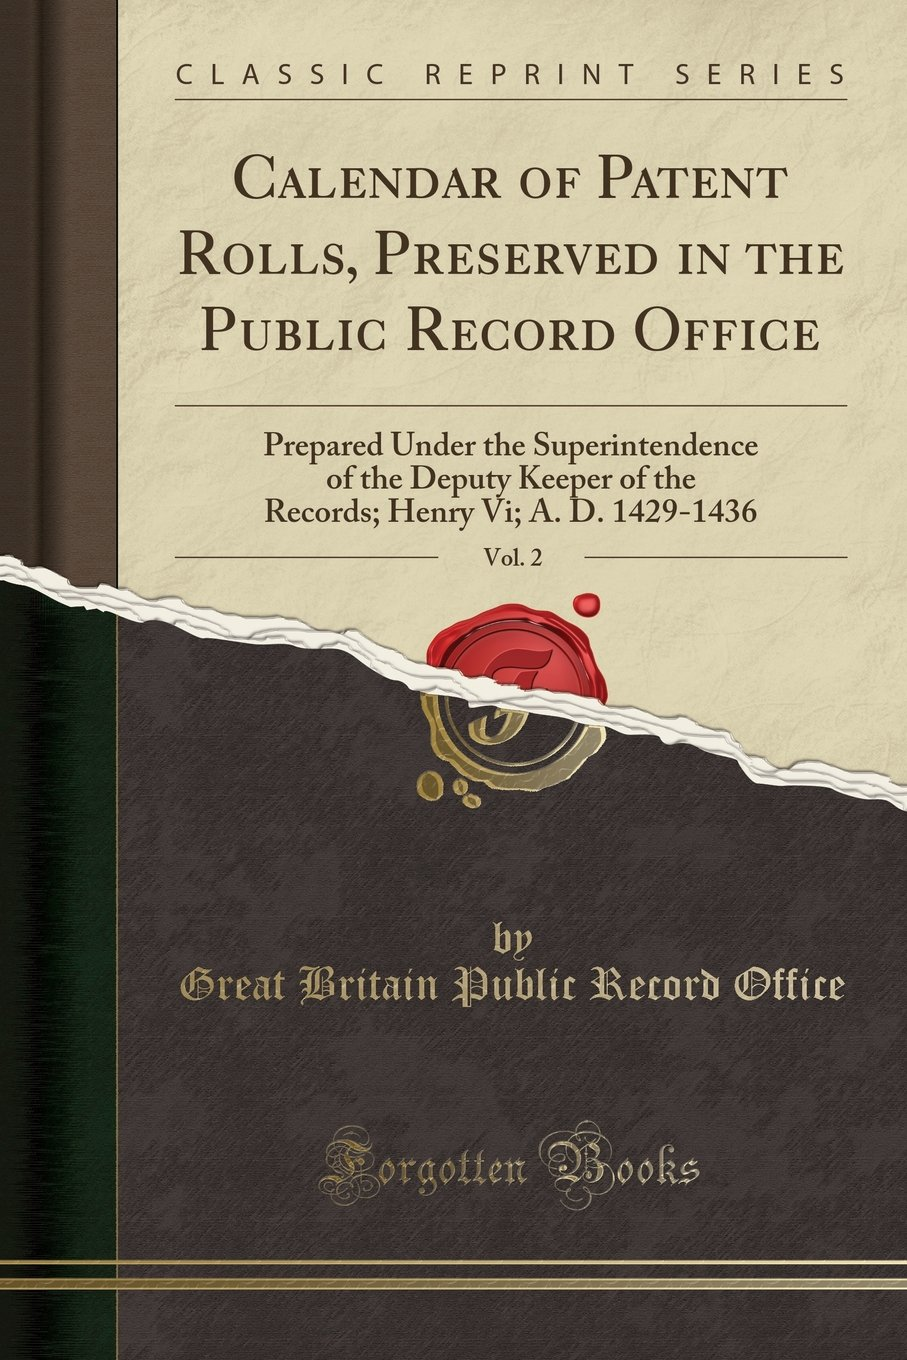 Download Calendar of Patent Rolls, Preserved in the Public Record Office, Vol. 2: Prepared Under the Superintendence of the Deputy Keeper of the Records; Henry Vi; A. D. 1429-1436 (Classic Reprint) PDF